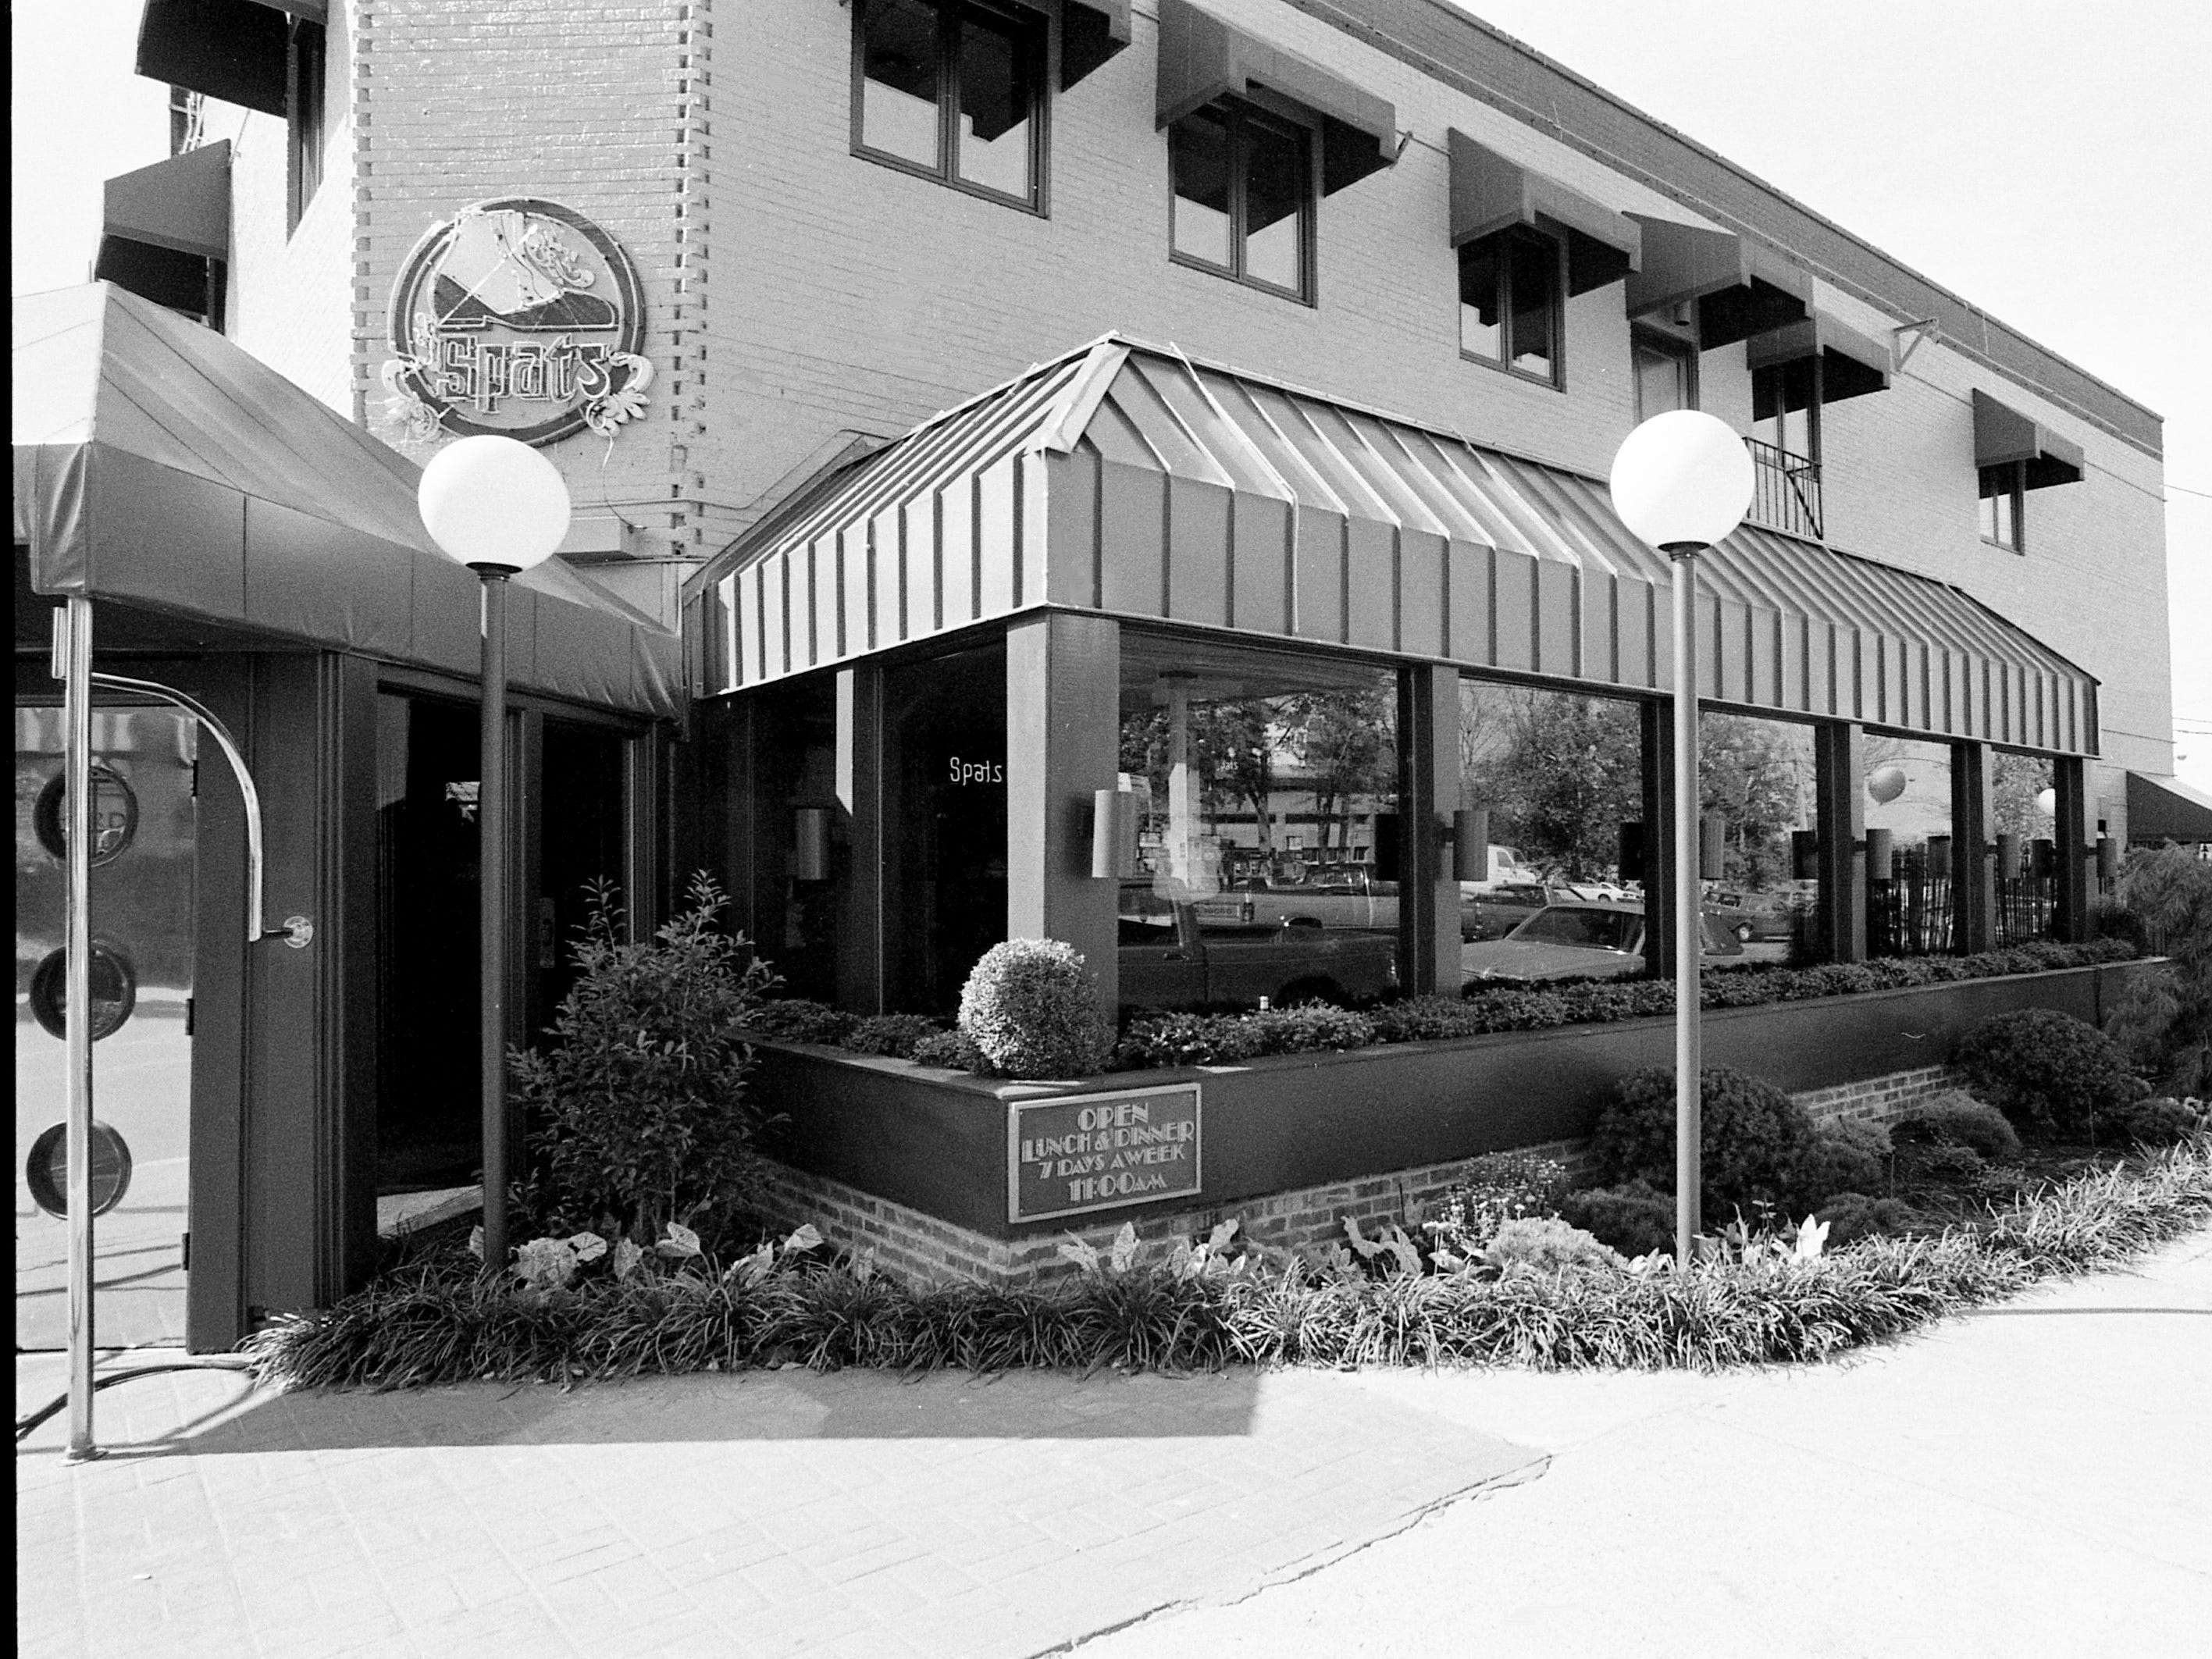 The Spats restaurant, here at 1601 21st Ave. S. Oct. 6, 1987, was established in 1973 by Howard Lippmann's Hillsboro Foods. The successful restaurant was the first place in Nashville where you could order ribs and eat them sitting down.